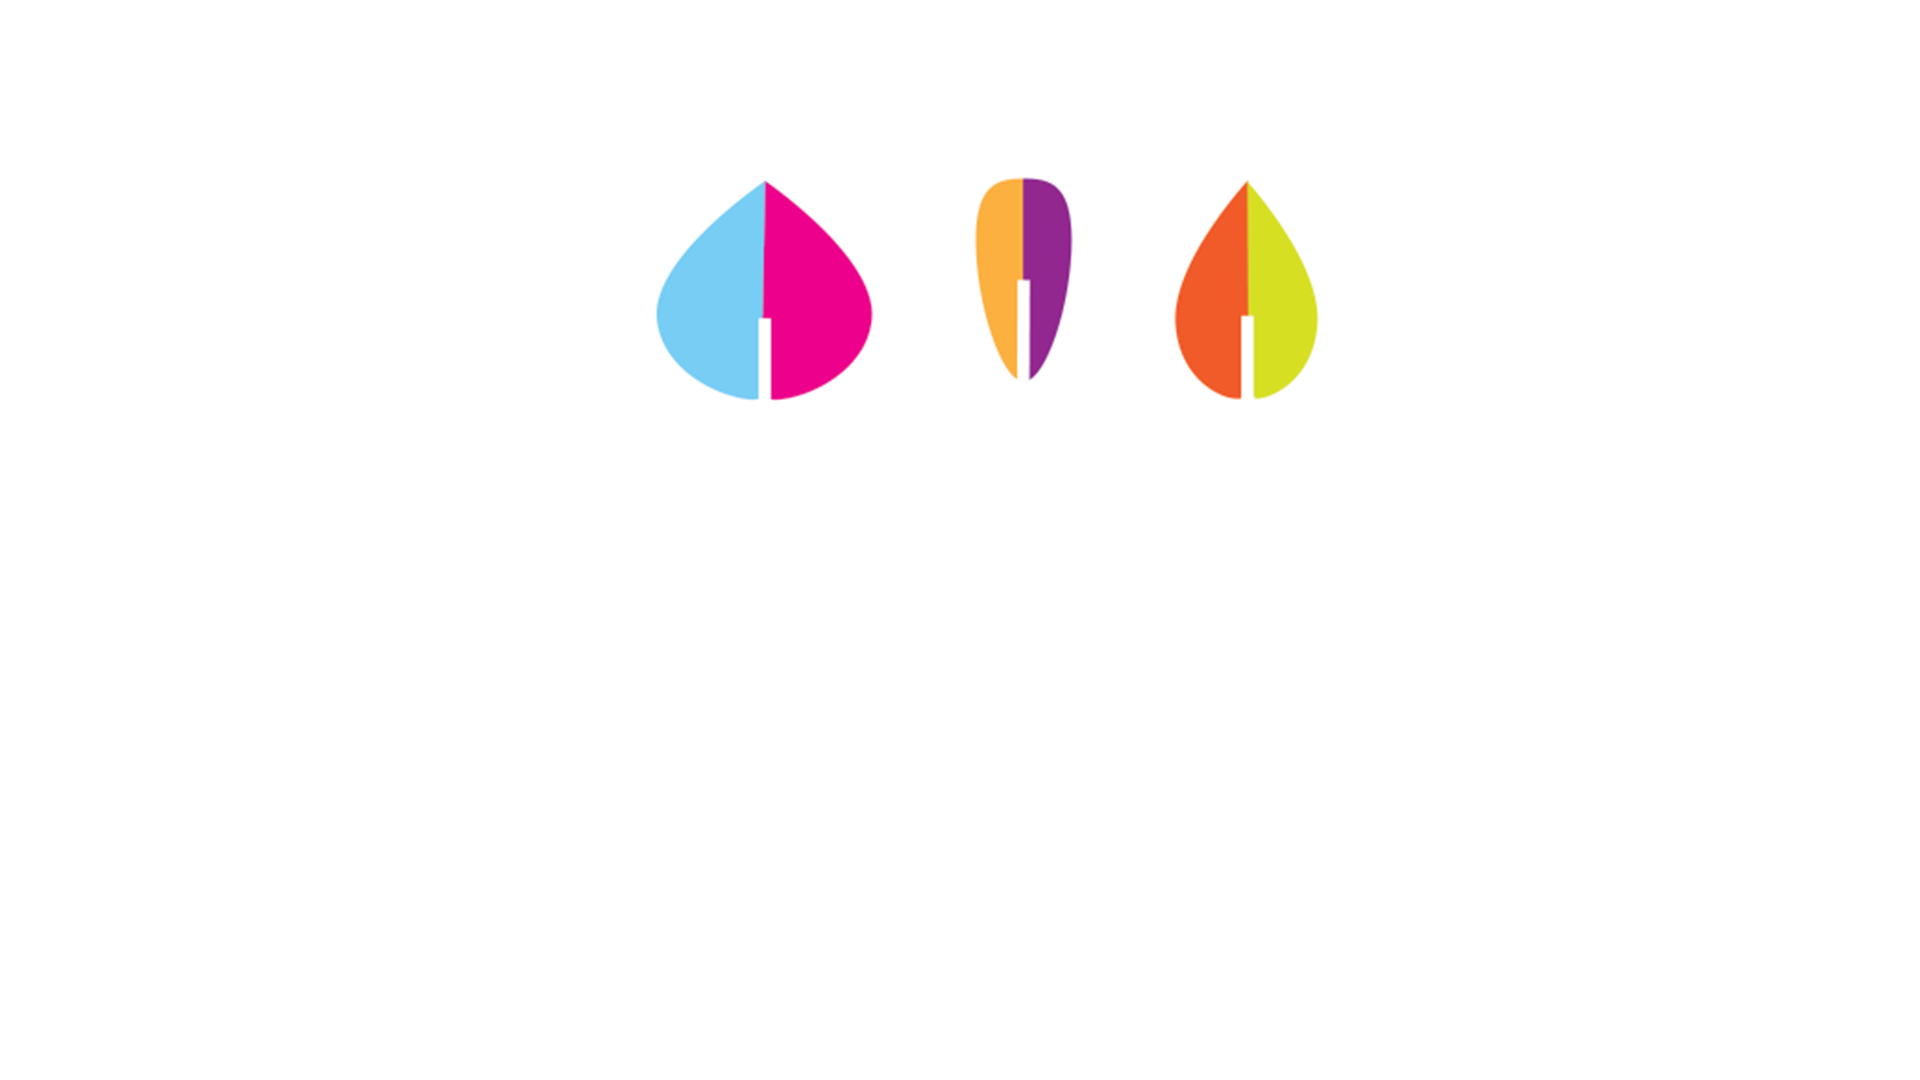 Inspired by Nature Illumination Display